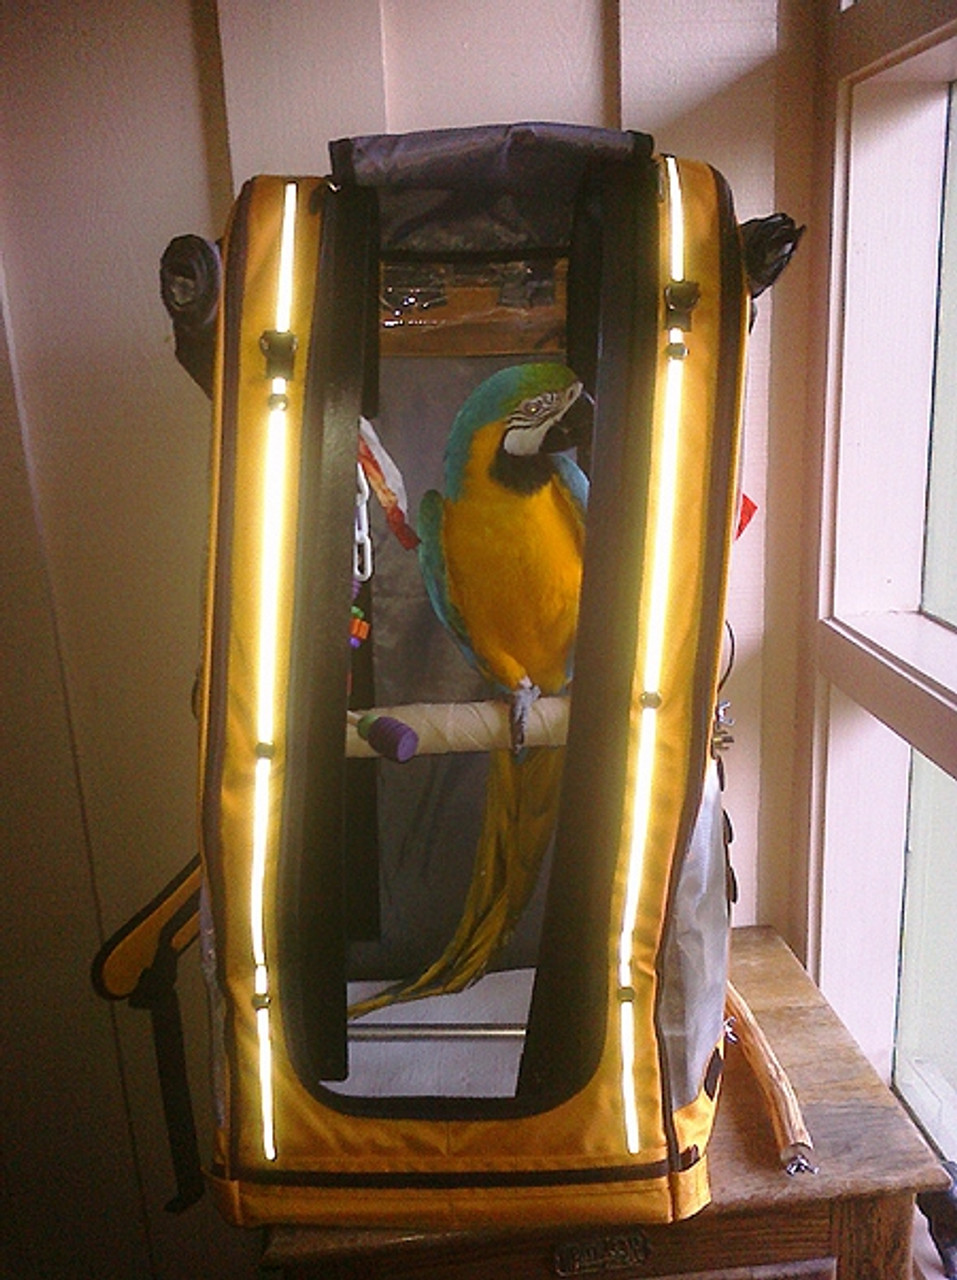 Misses Sierra, the blue and gold macaw